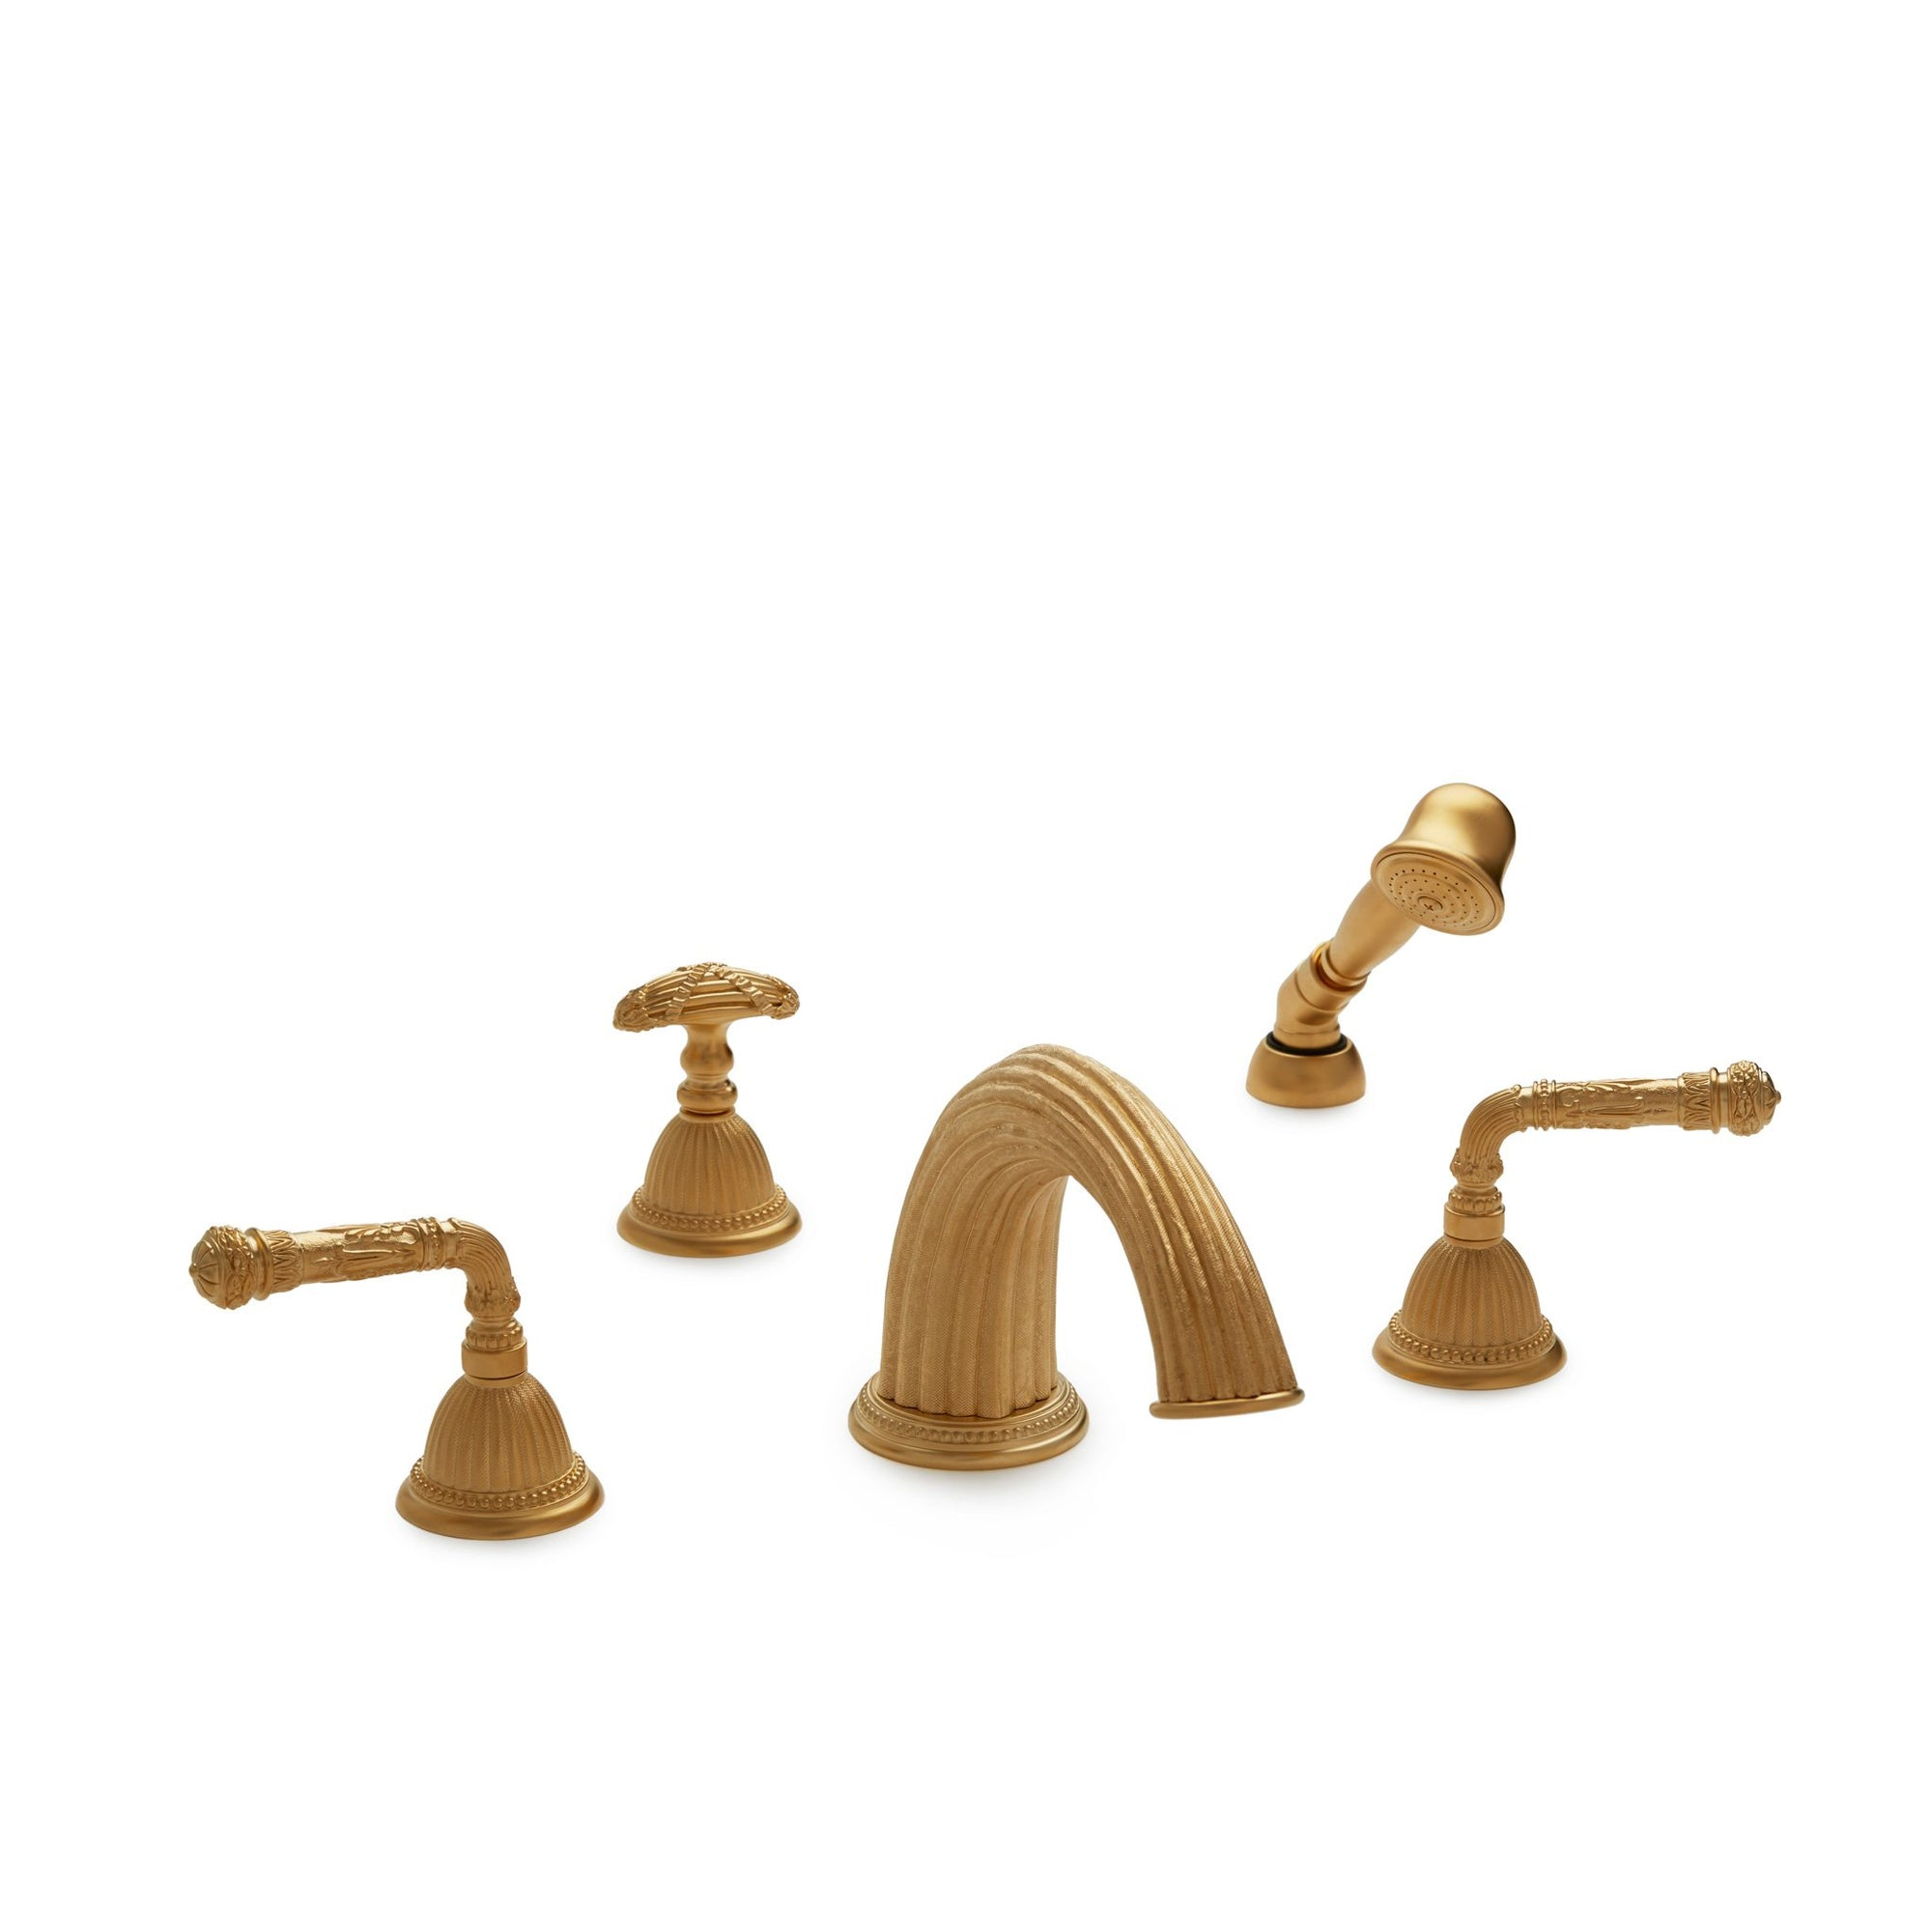 1025DTS821-GP Sherle Wagner International Empire Lever Deck Mount Tub Set with Hand Shower in Gold Plate metal finish